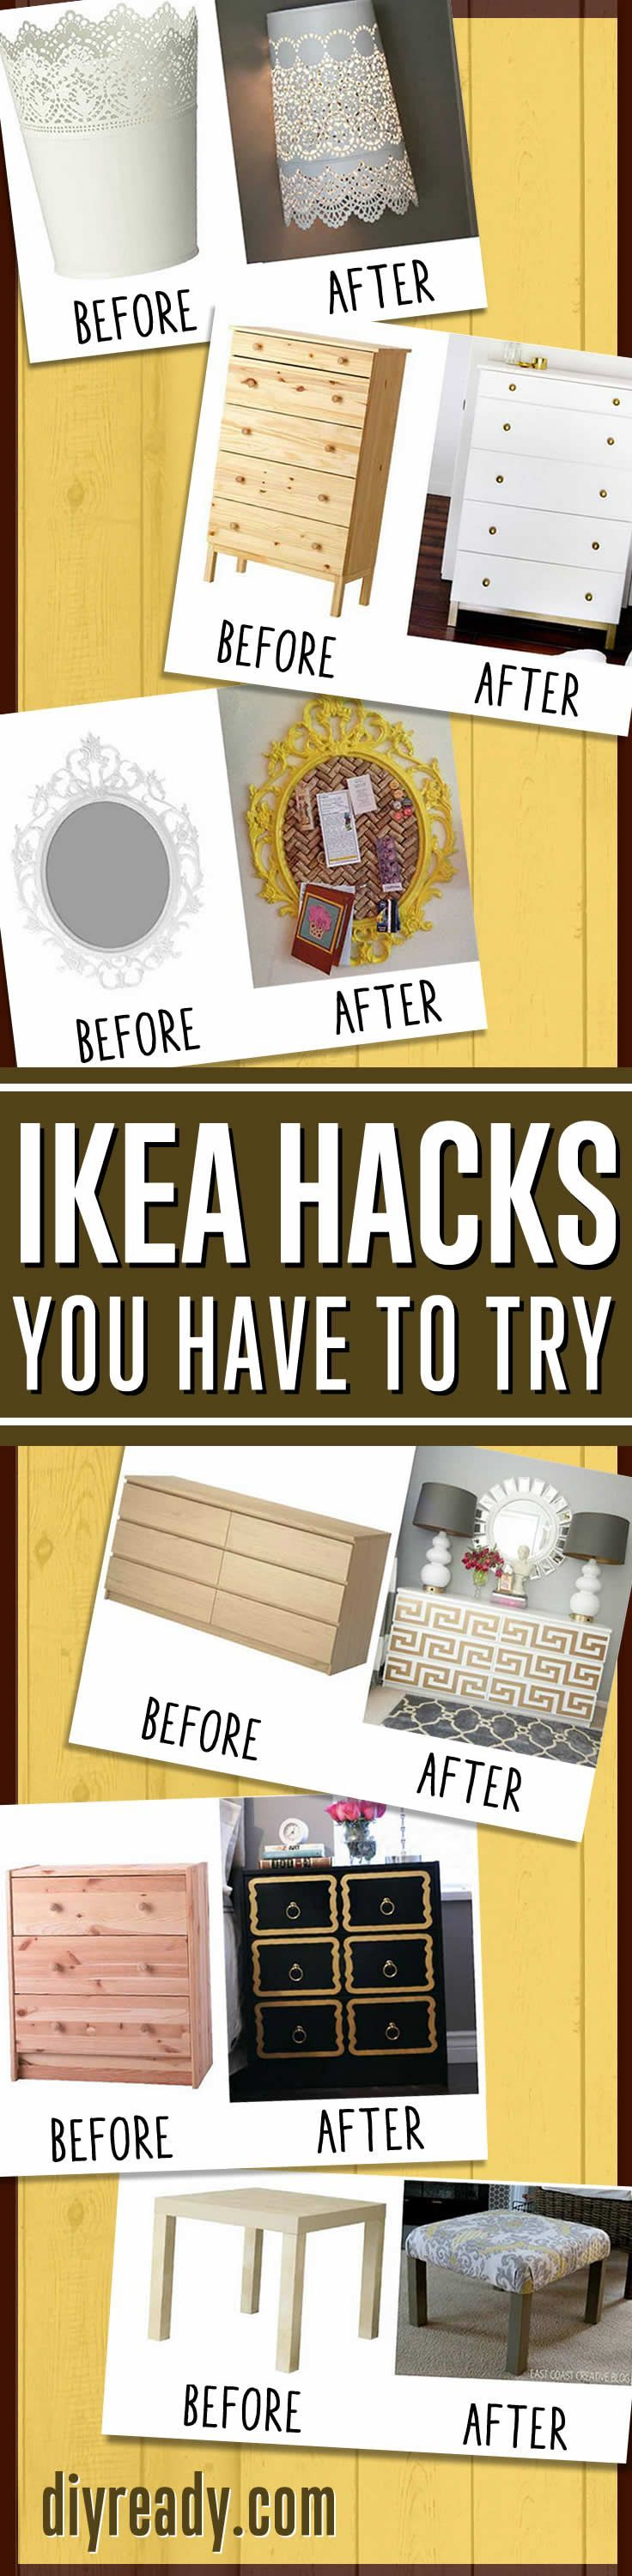 IKEA Hacks you have to see to believe! Cool DIY Furniture Ideas for Easy Home Decor Projects diyready.com #diy #furniture #diyprojects #ikea